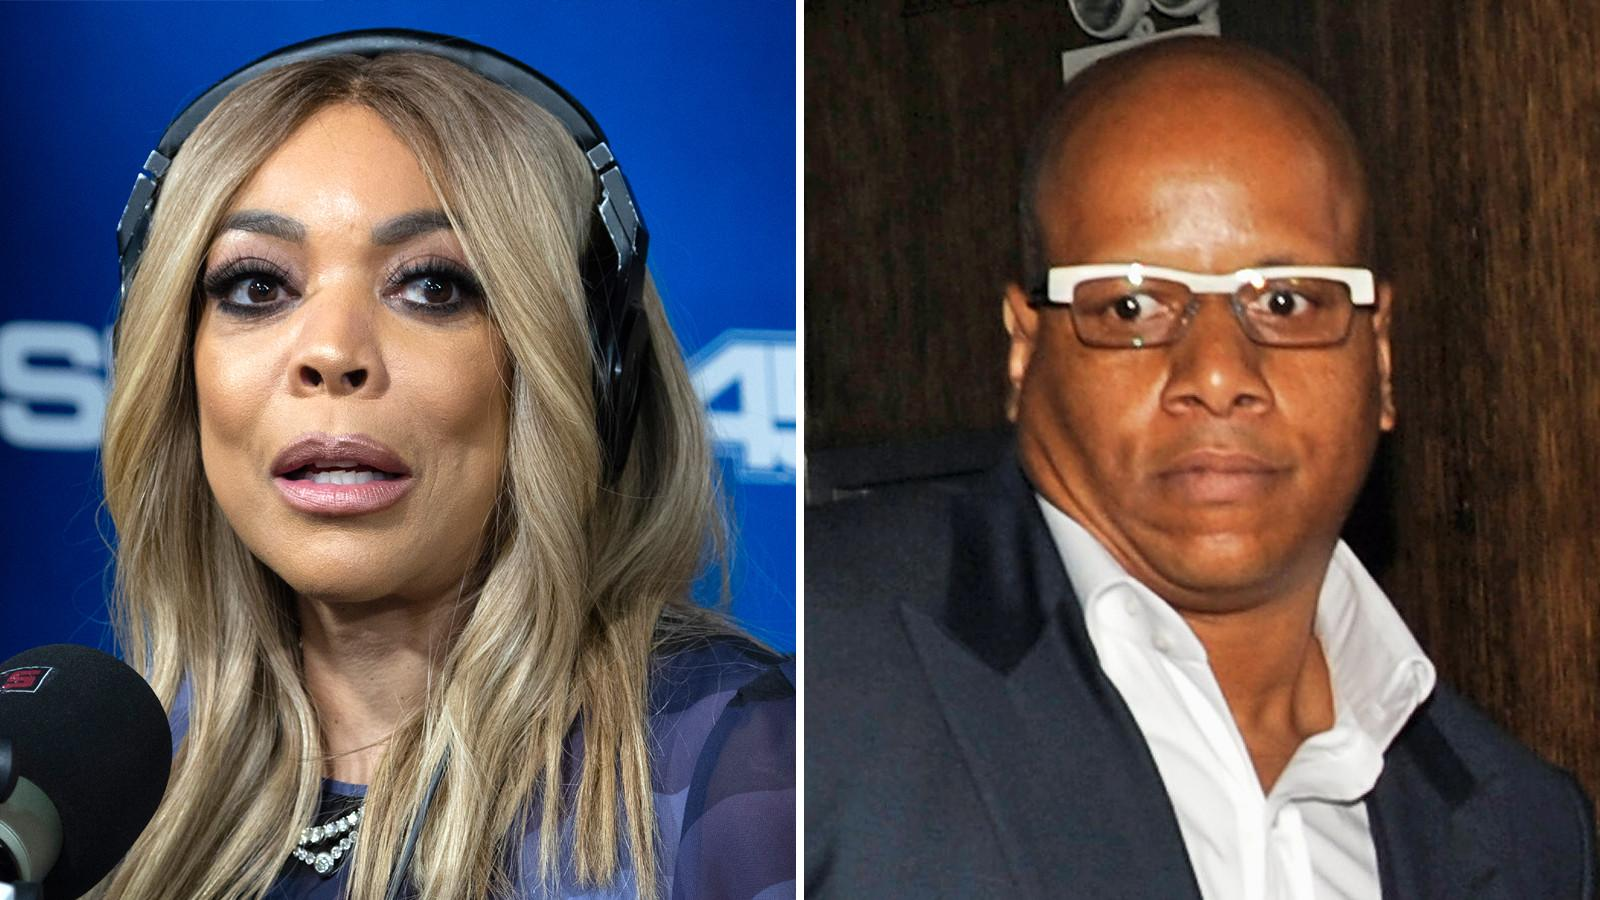 Wendy Williams Gets Really Emotional About Her Divorce - Says She'll Never Change Her Name!